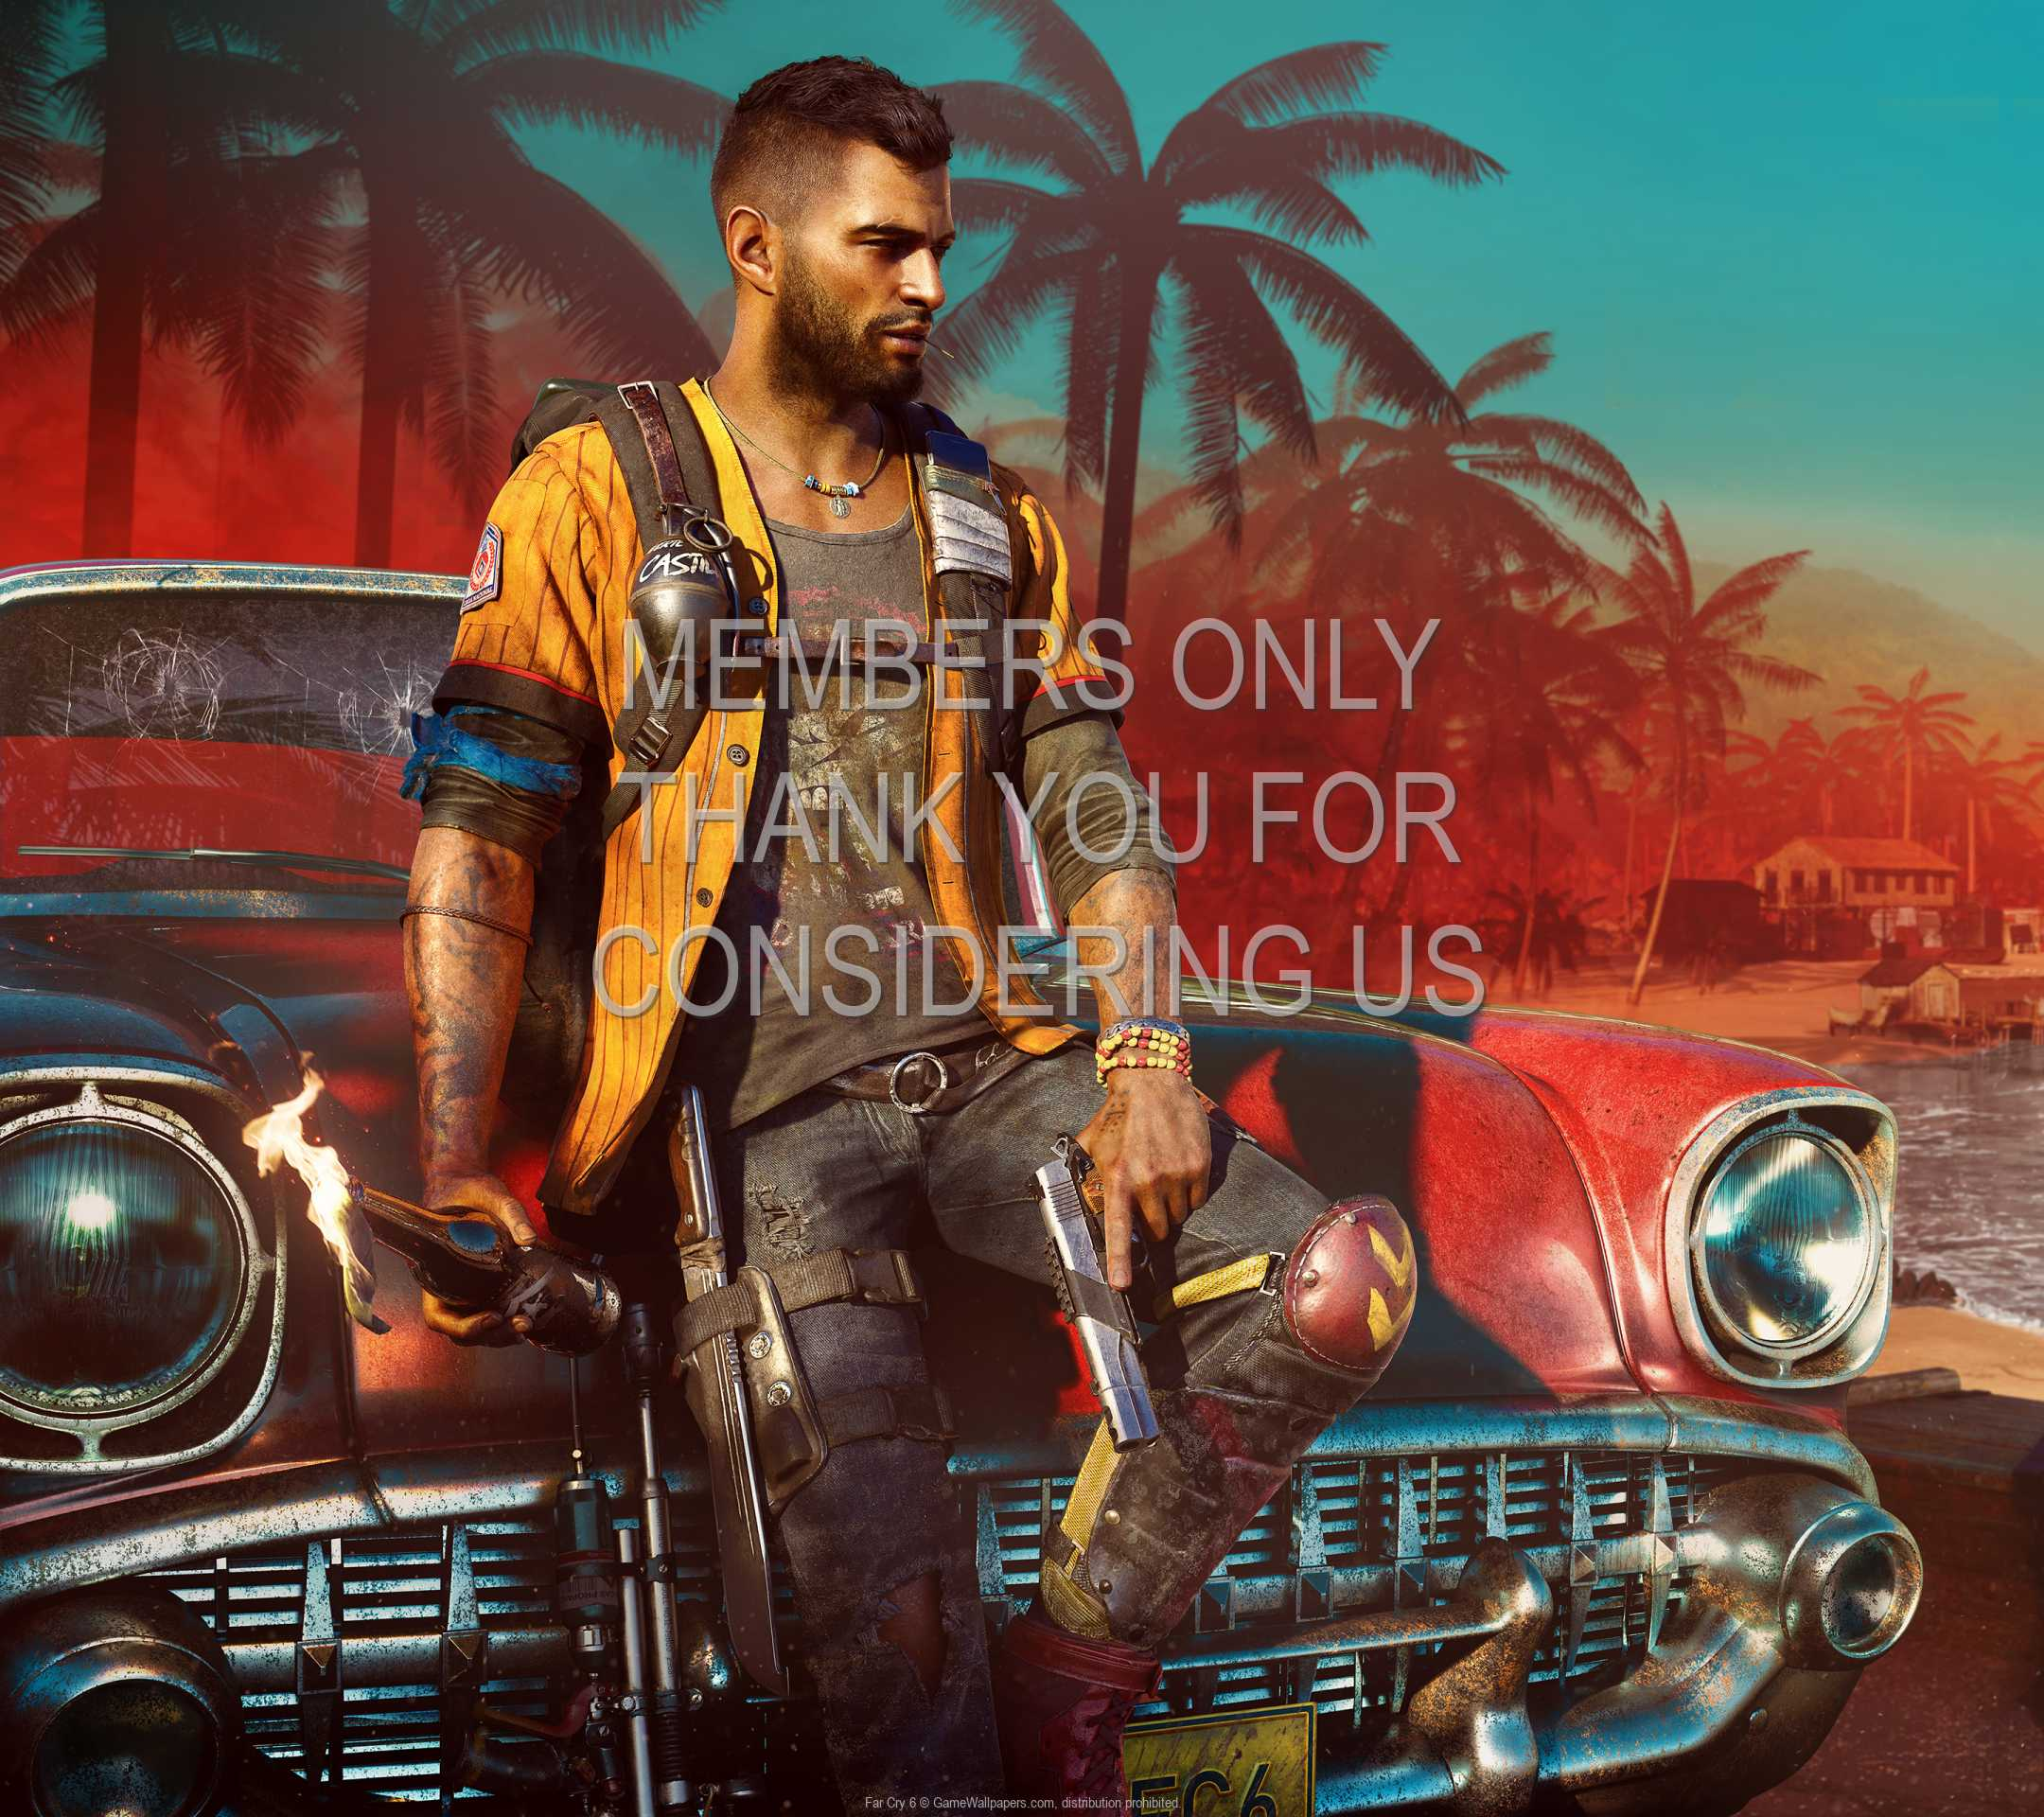 Far Cry 6 1080p Horizontal Mobile wallpaper or background 05